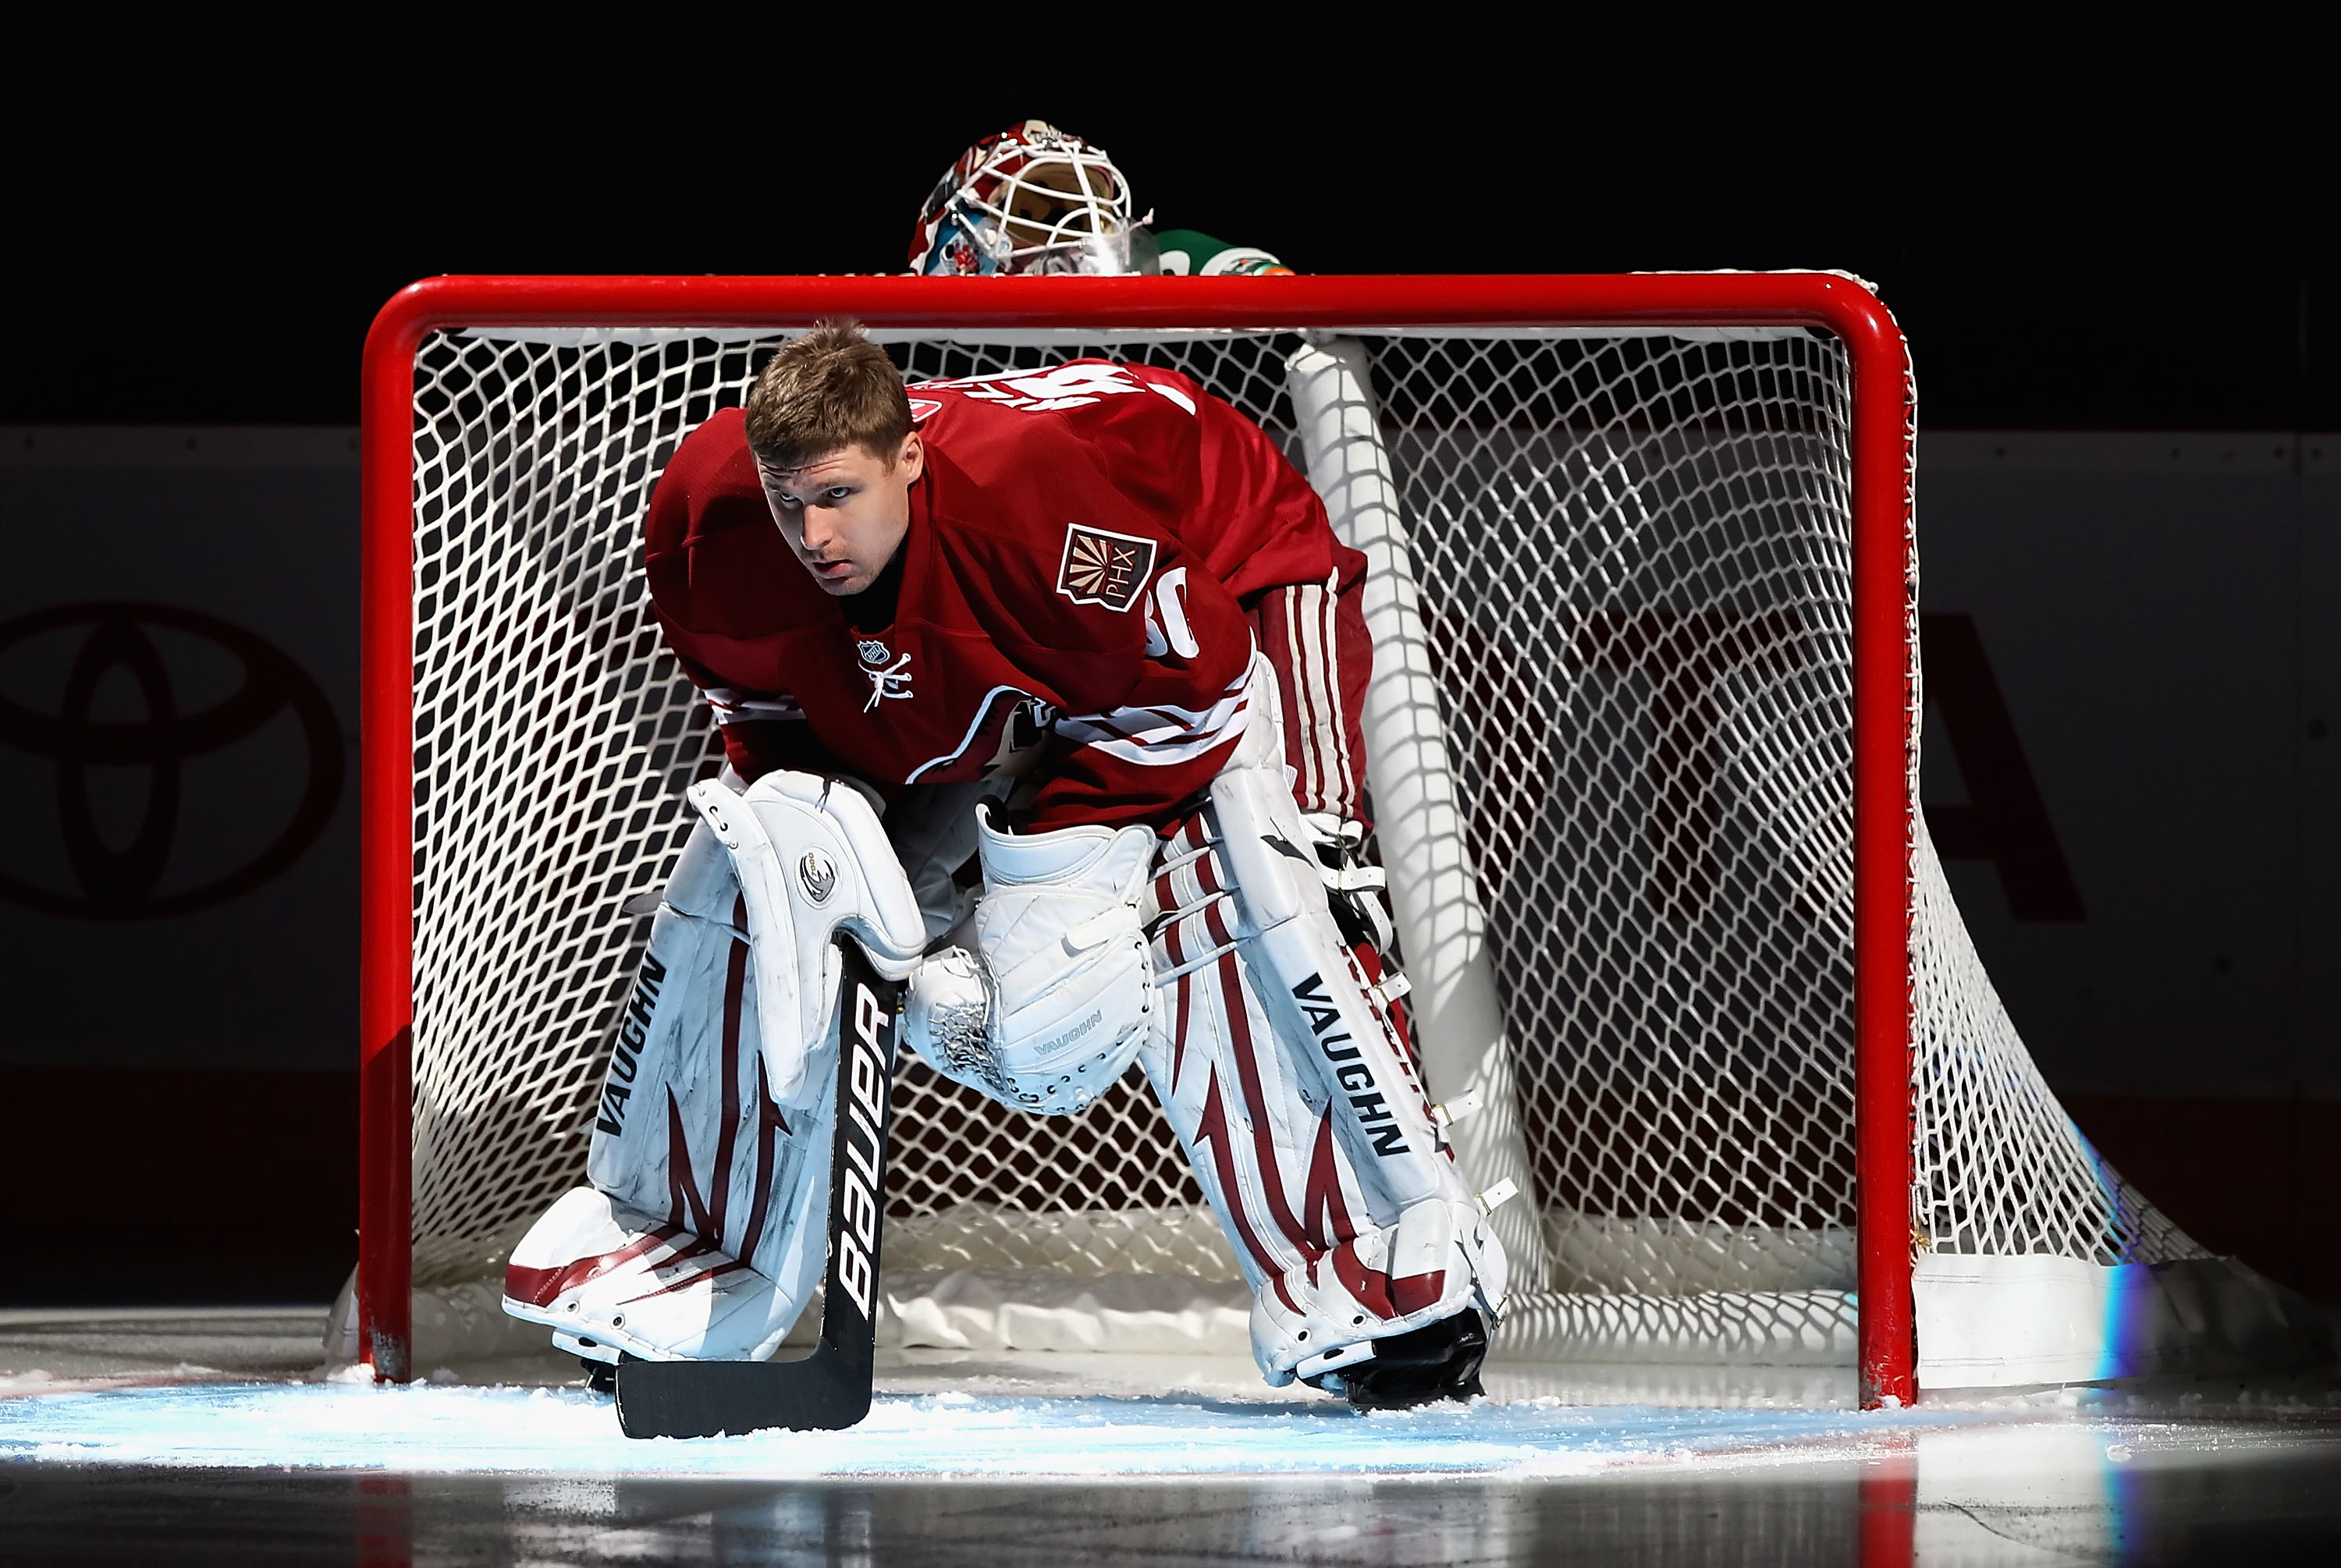 GLENDALE, AZ - JANUARY 22:  Goaltender Ilya Bryzgalov #30 of the Phoenix Coyotes is introduced before the NHL game against the Los Angeles Kings at Jobing.com Arena on January 22, 2011 in Glendale, Arizona.  The Kings defeated the Coyotes 4-3. (Photo by C